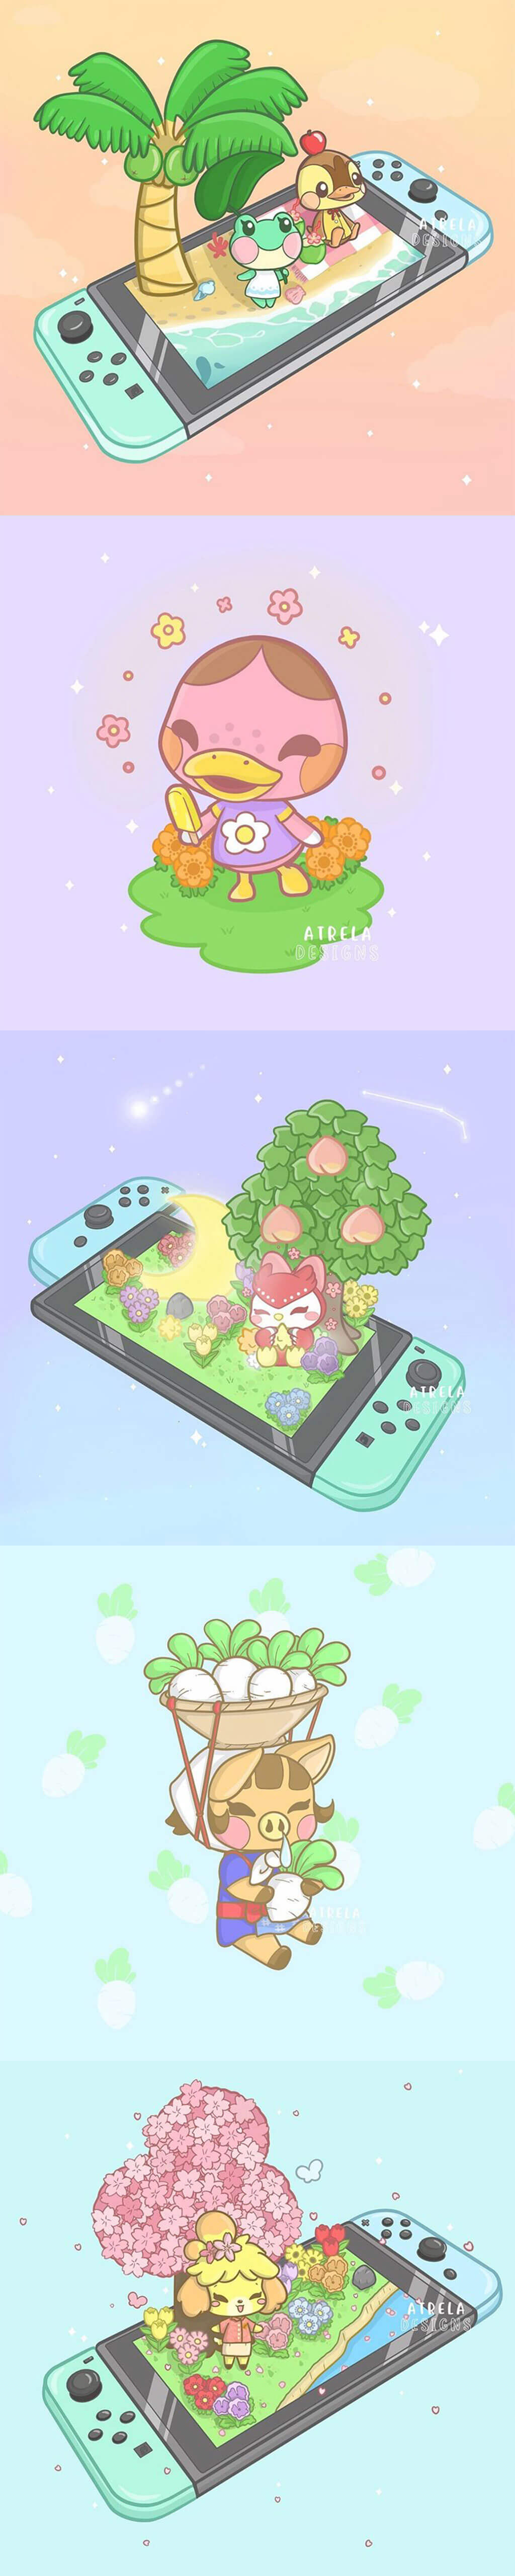 Animal Crossing Fan Art by atrela.designs